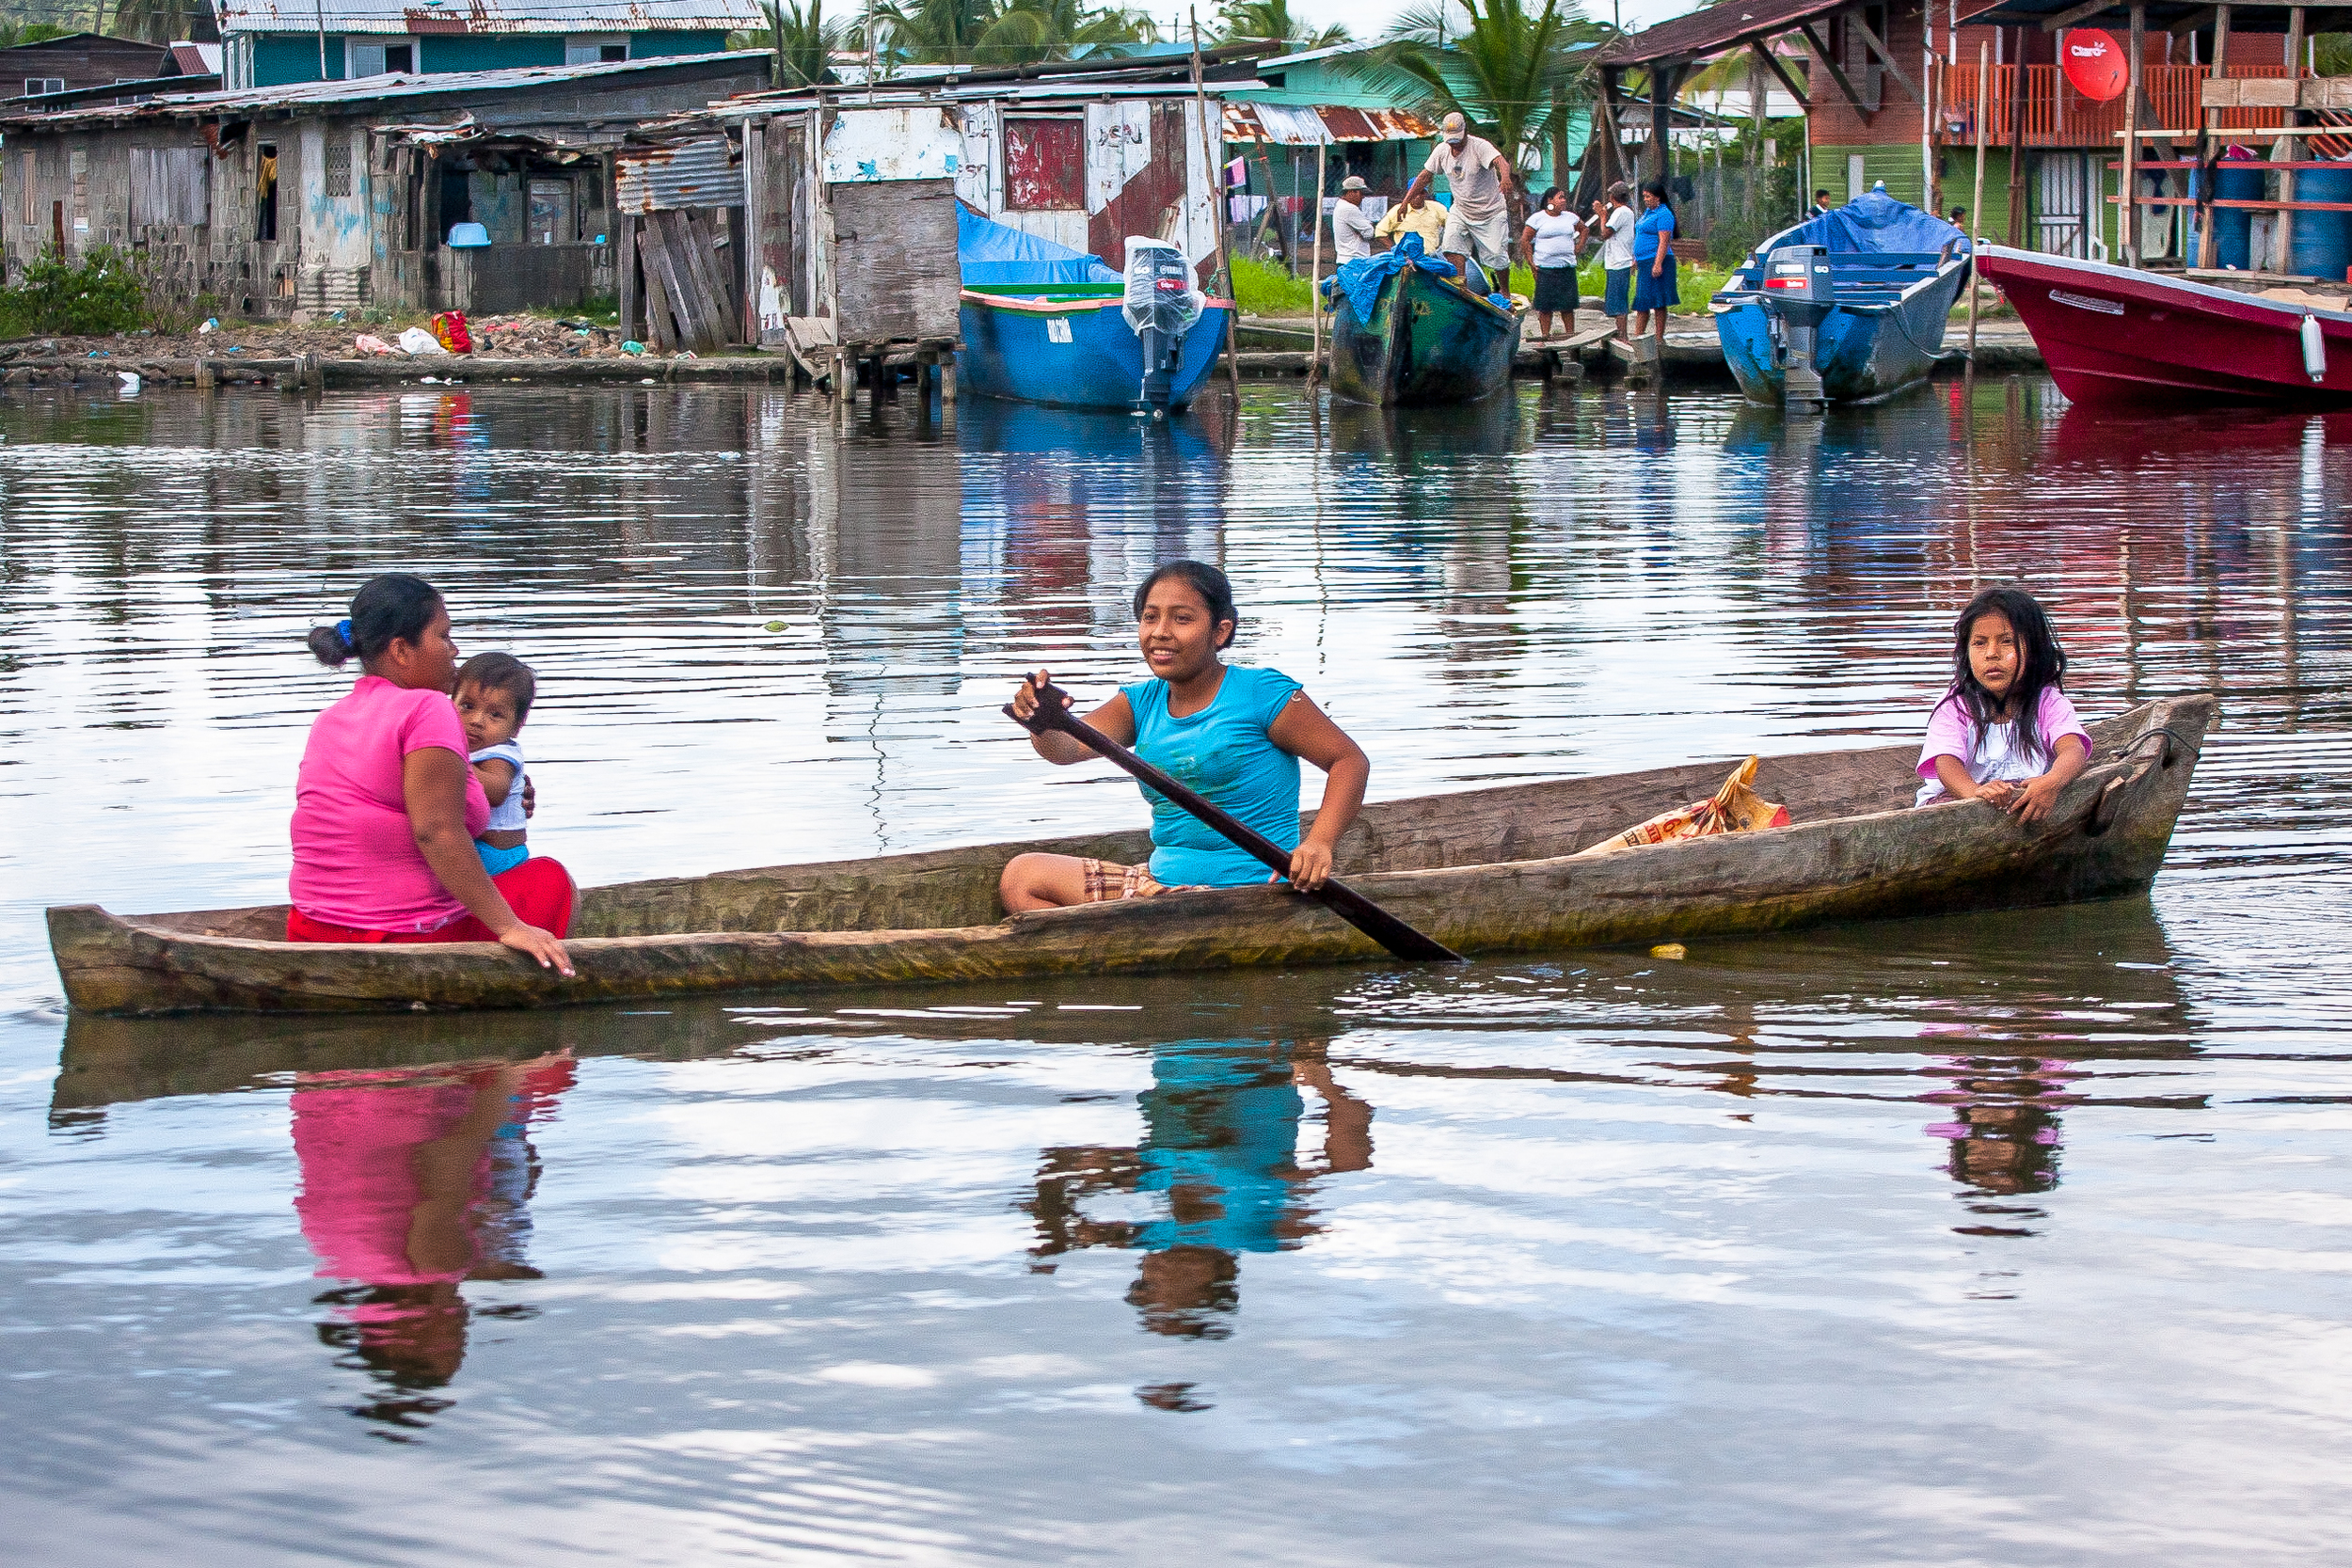 Fellow travelers and loads of color at the Almirante water taxi station enroute to Bocas del Toro, Panama.